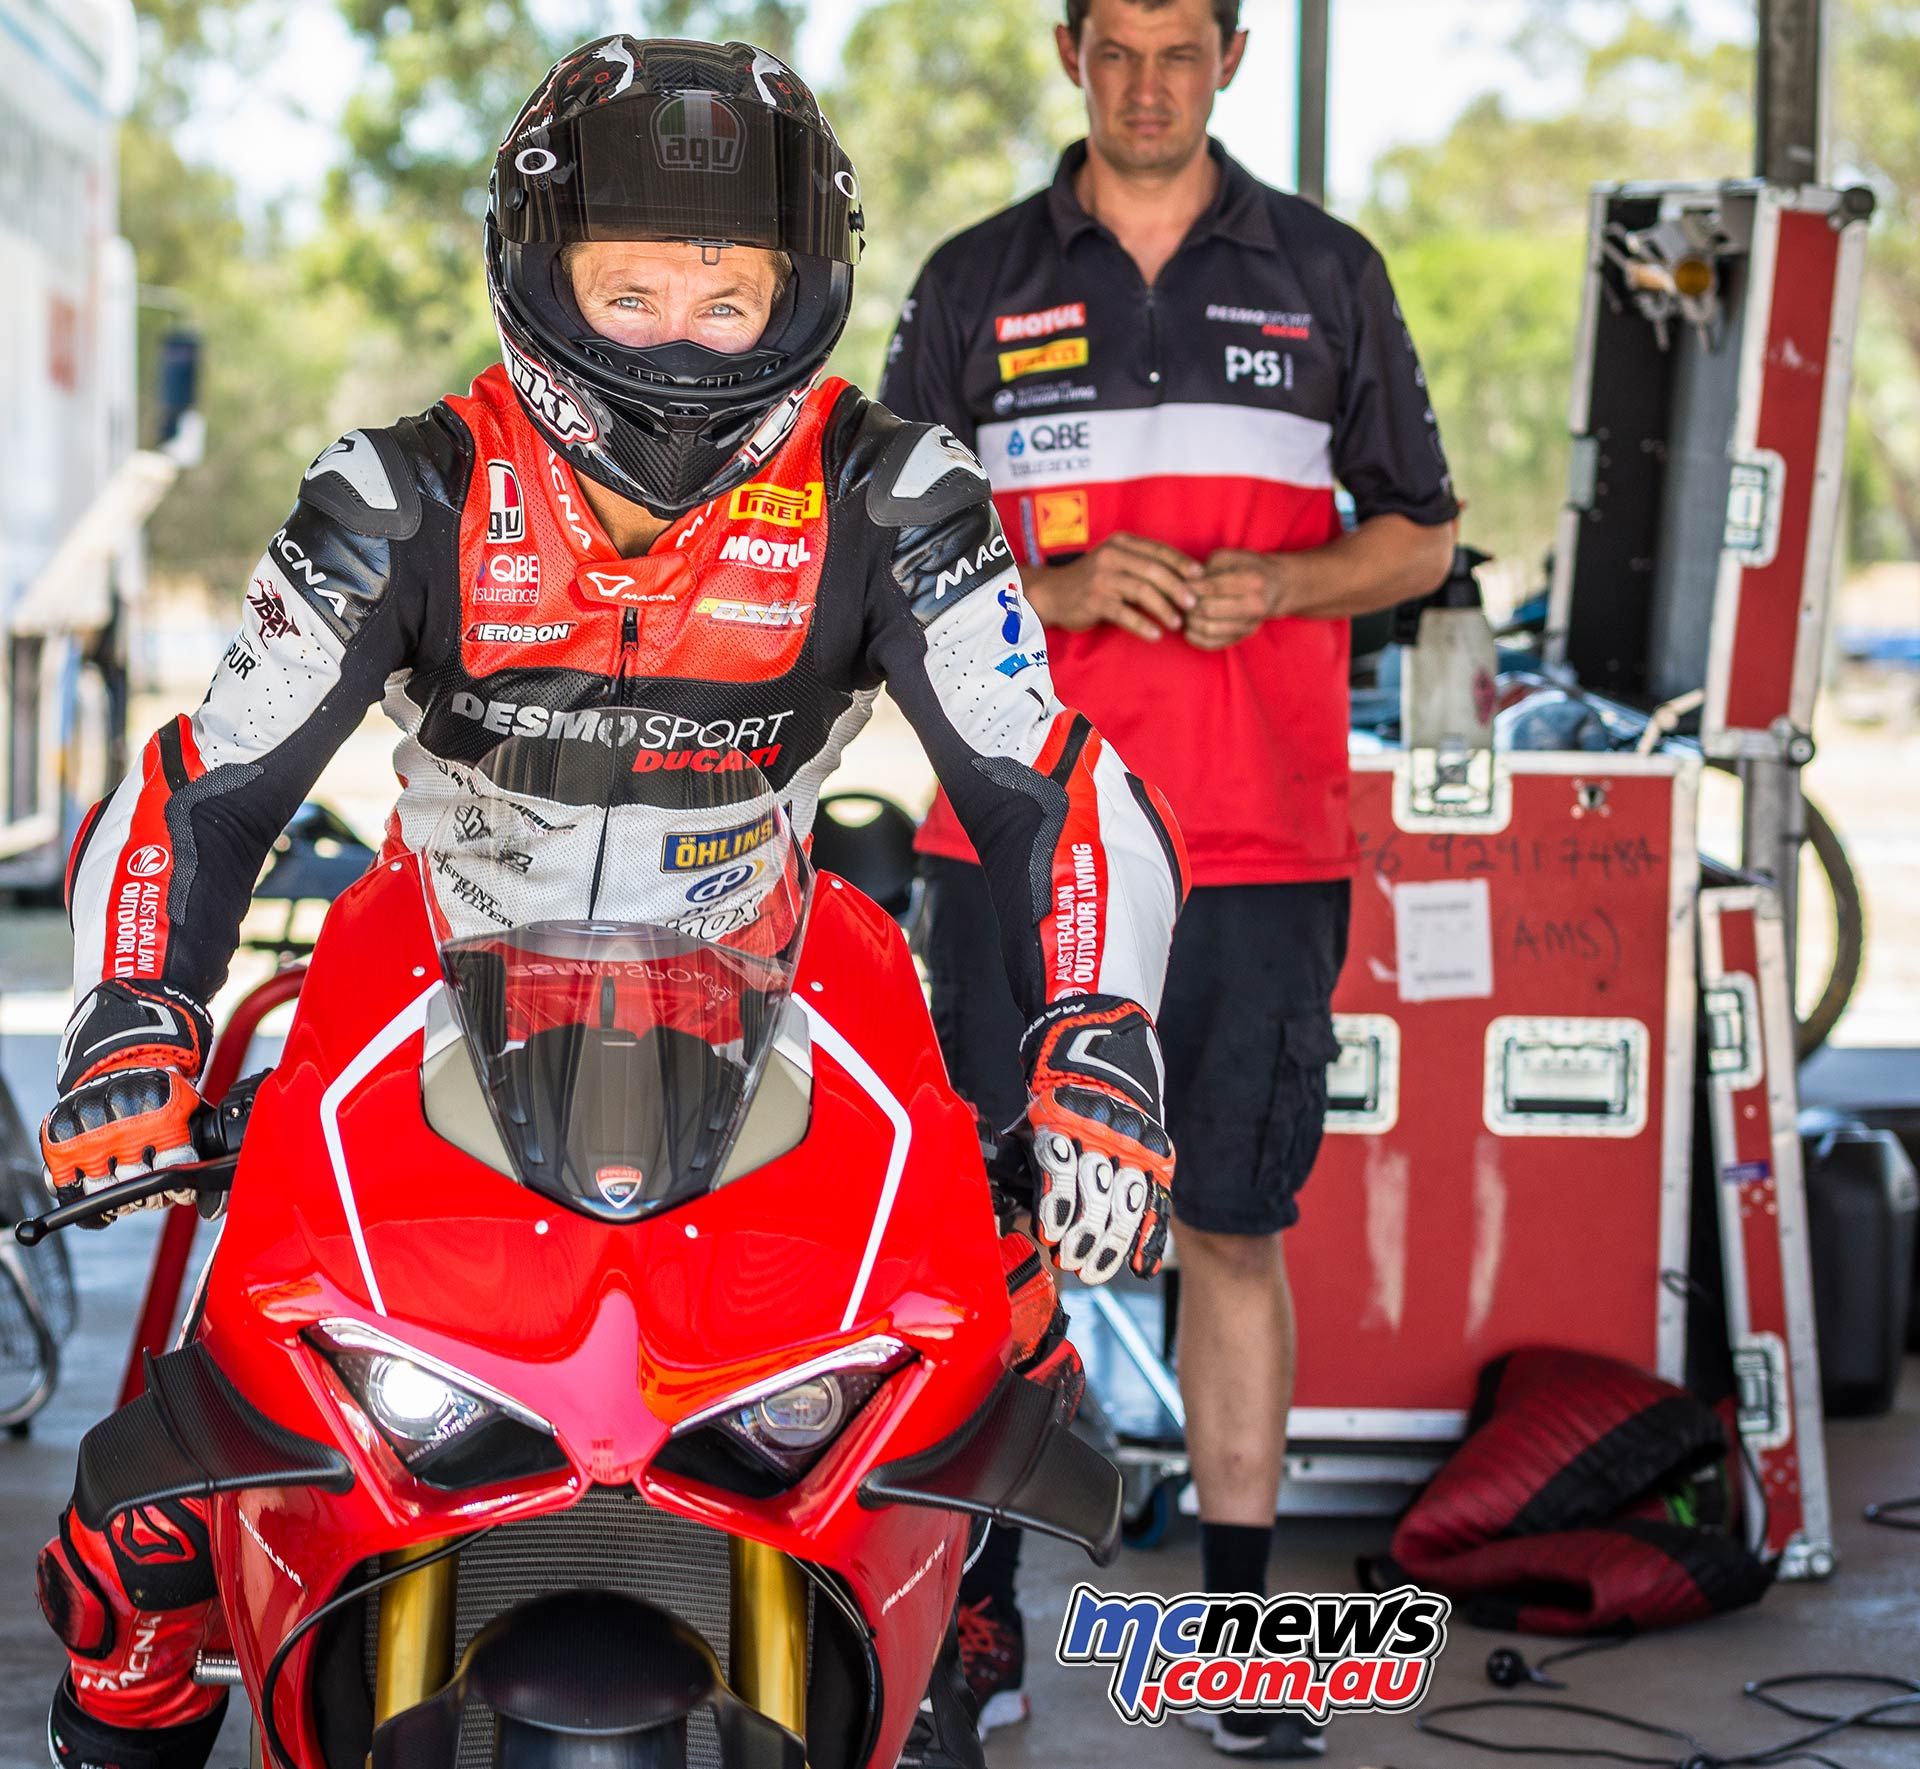 Ducati Panigale VR Troy Bayliss